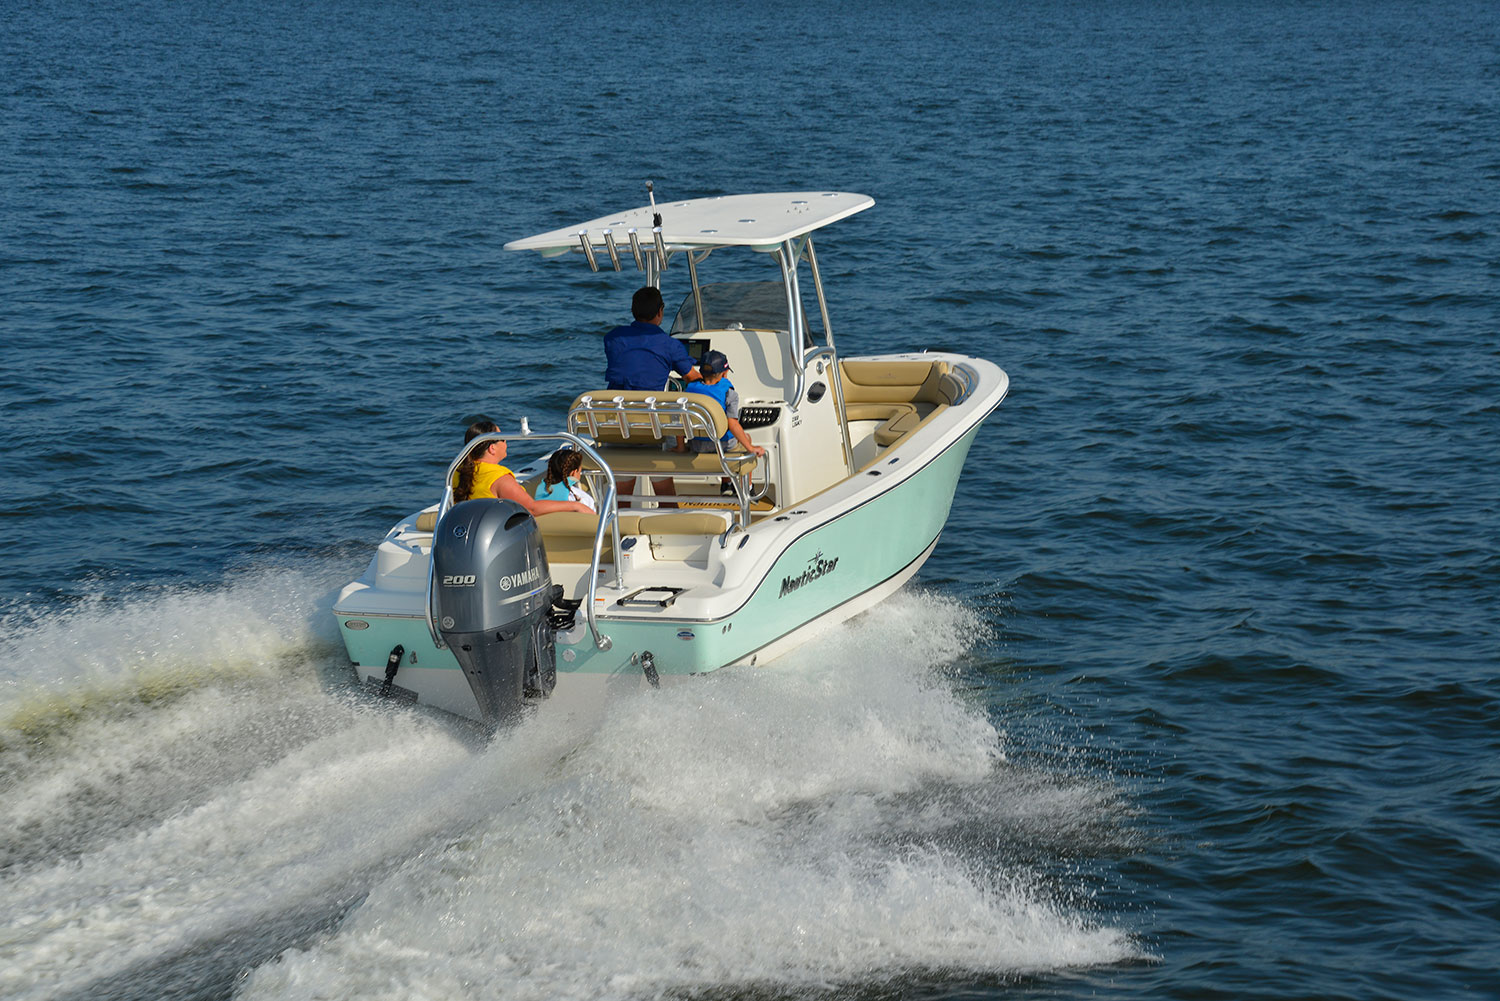 Man captaining the NauticStar 2303 Legacy with a woman, girl, and boy on board